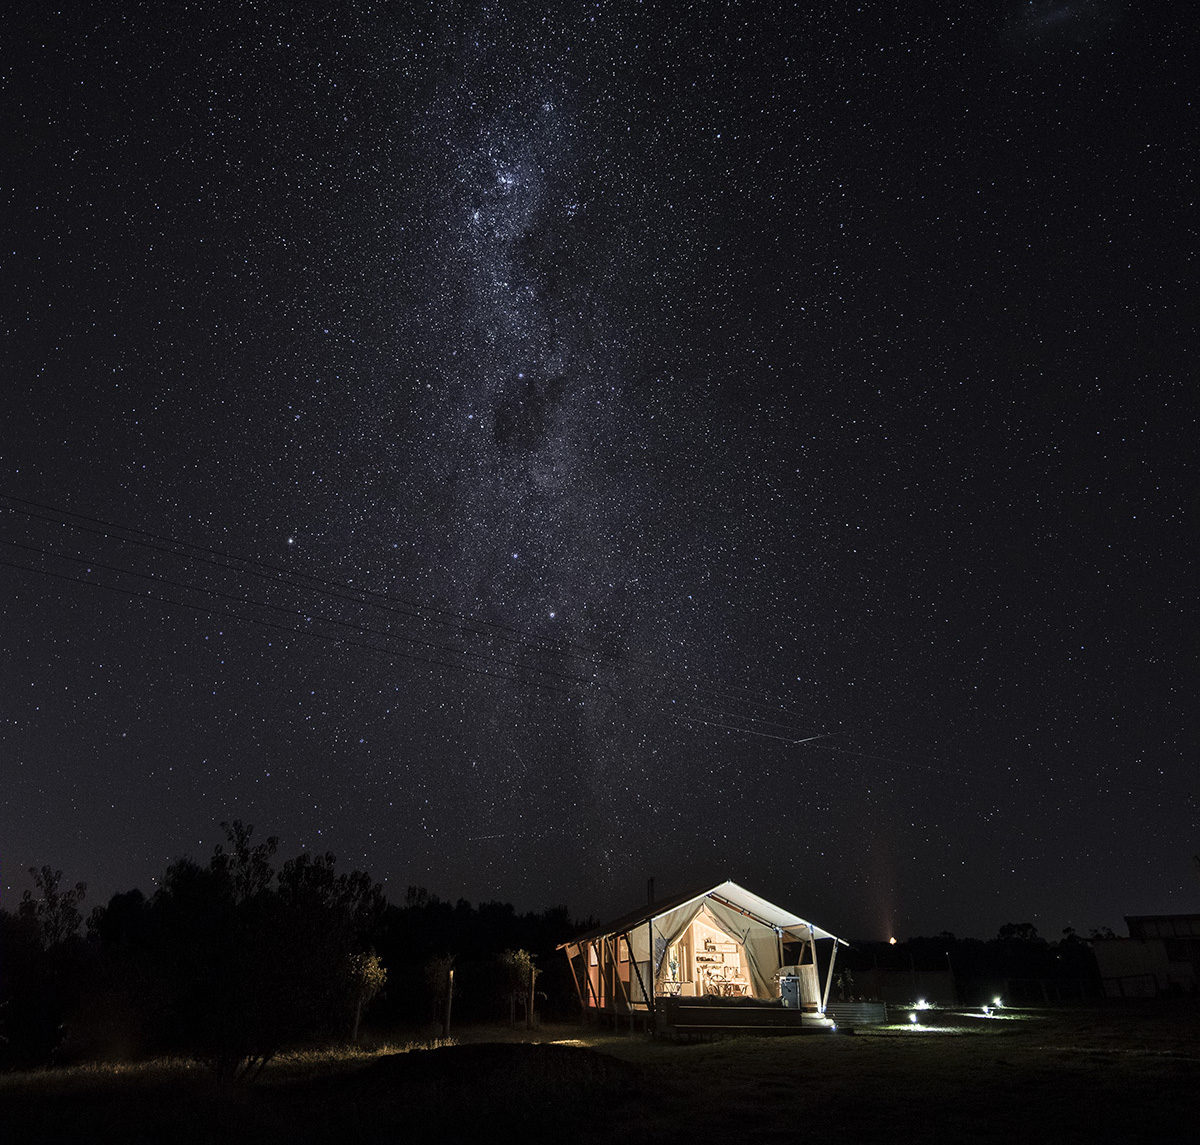 Nashdale Lane Wines_01_Night_Cabins_029-HDRcrop.jpg